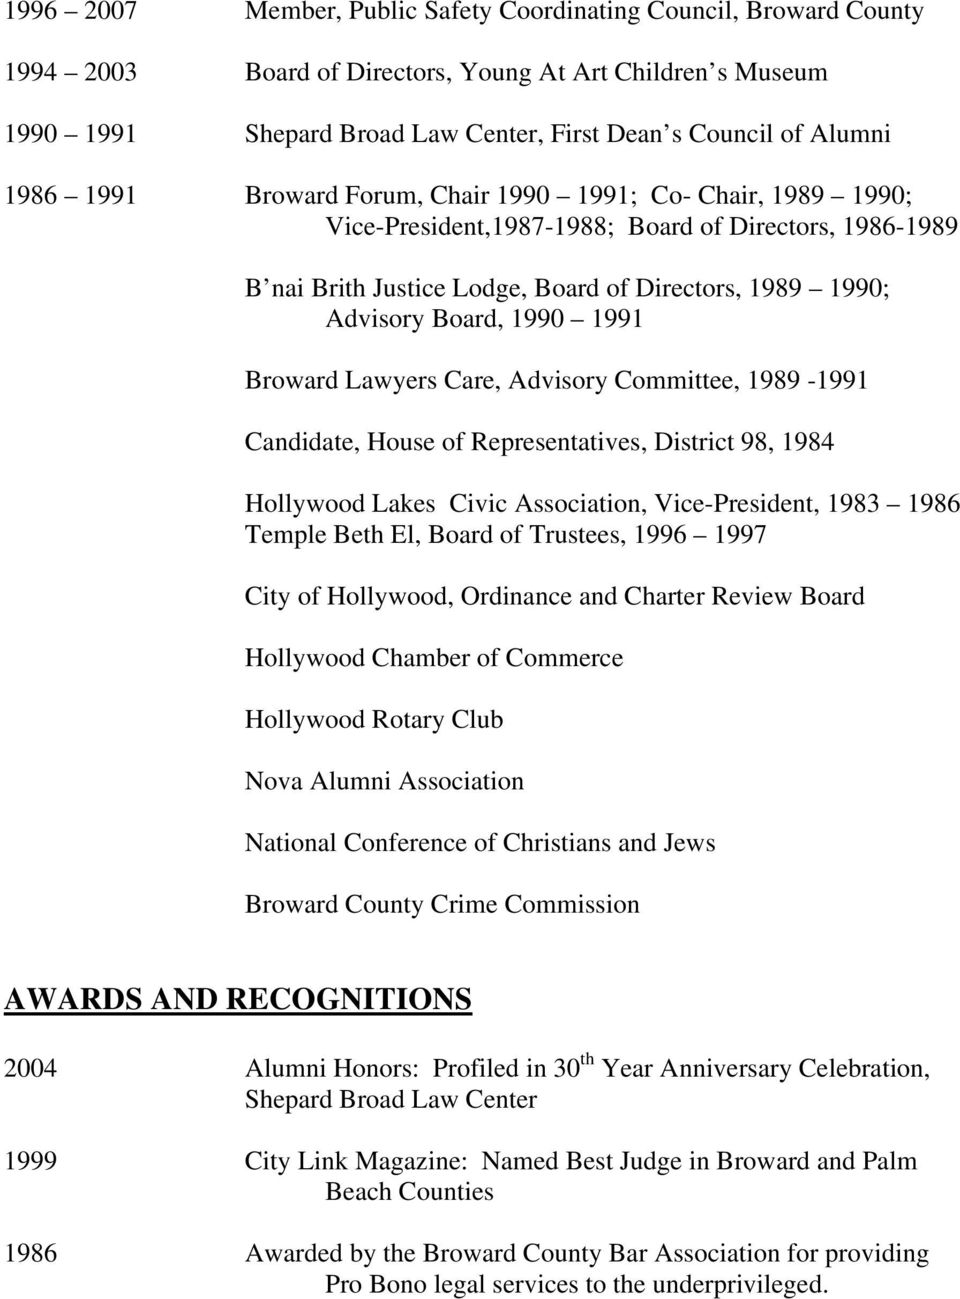 1991 Broward Lawyers Care, Advisory Committee, 1989-1991 Candidate, House of Representatives, District 98, 1984 Hollywood Lakes Civic Association, Vice-President, 1983 1986 Temple Beth El, Board of